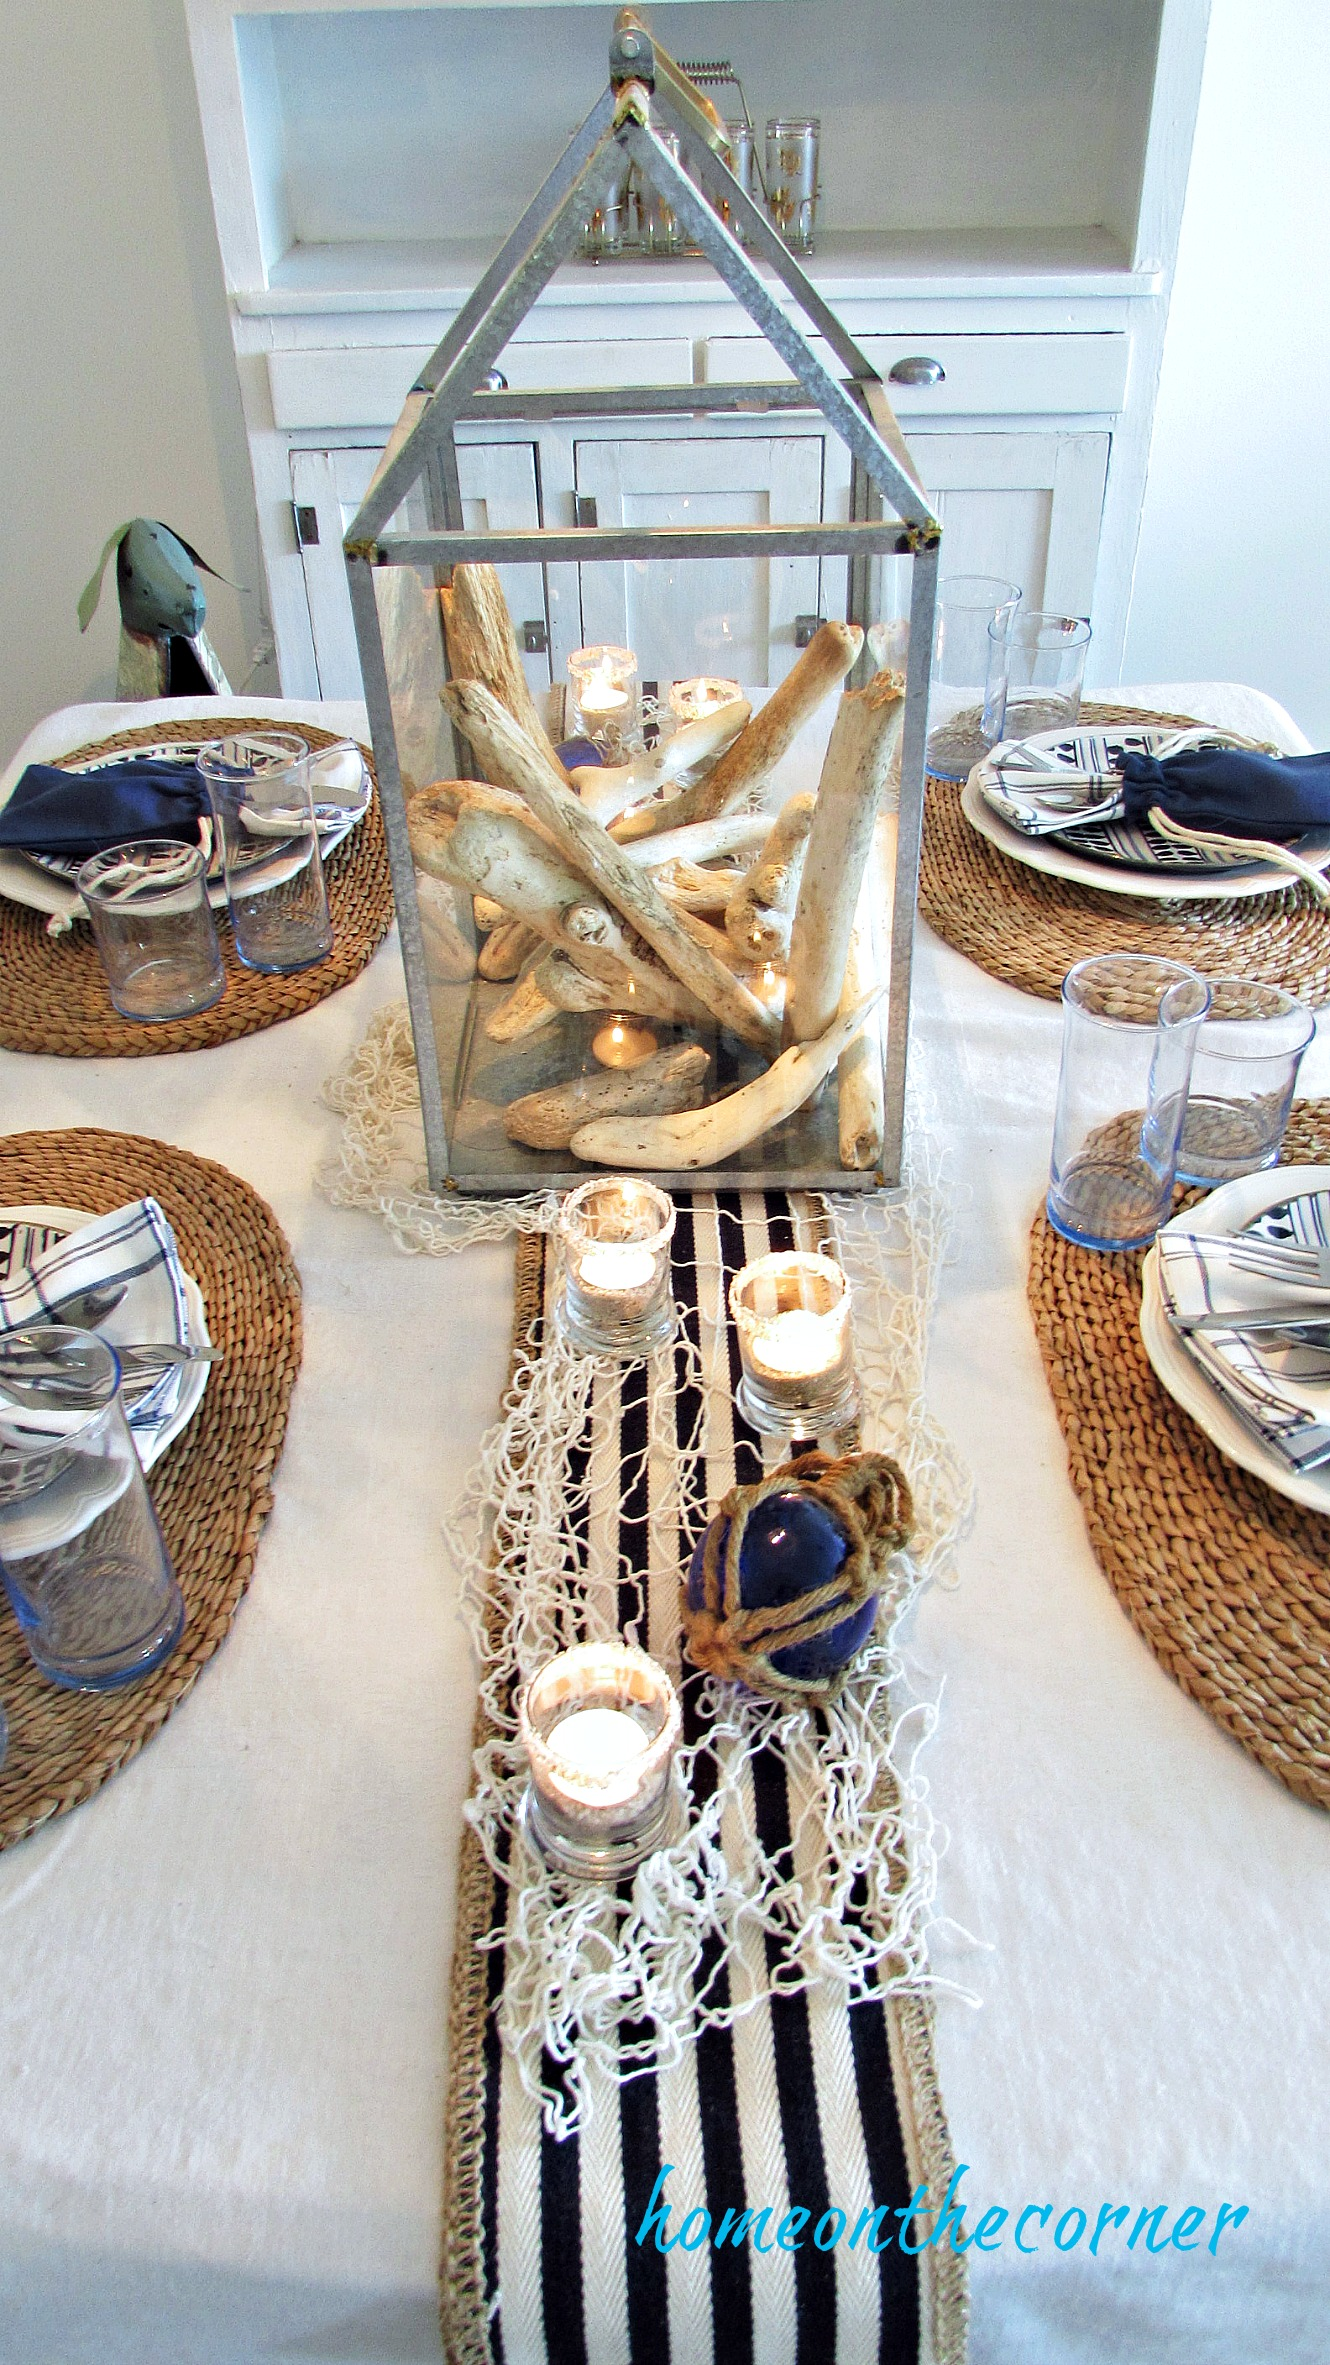 blue and white dining room striped runner and netting